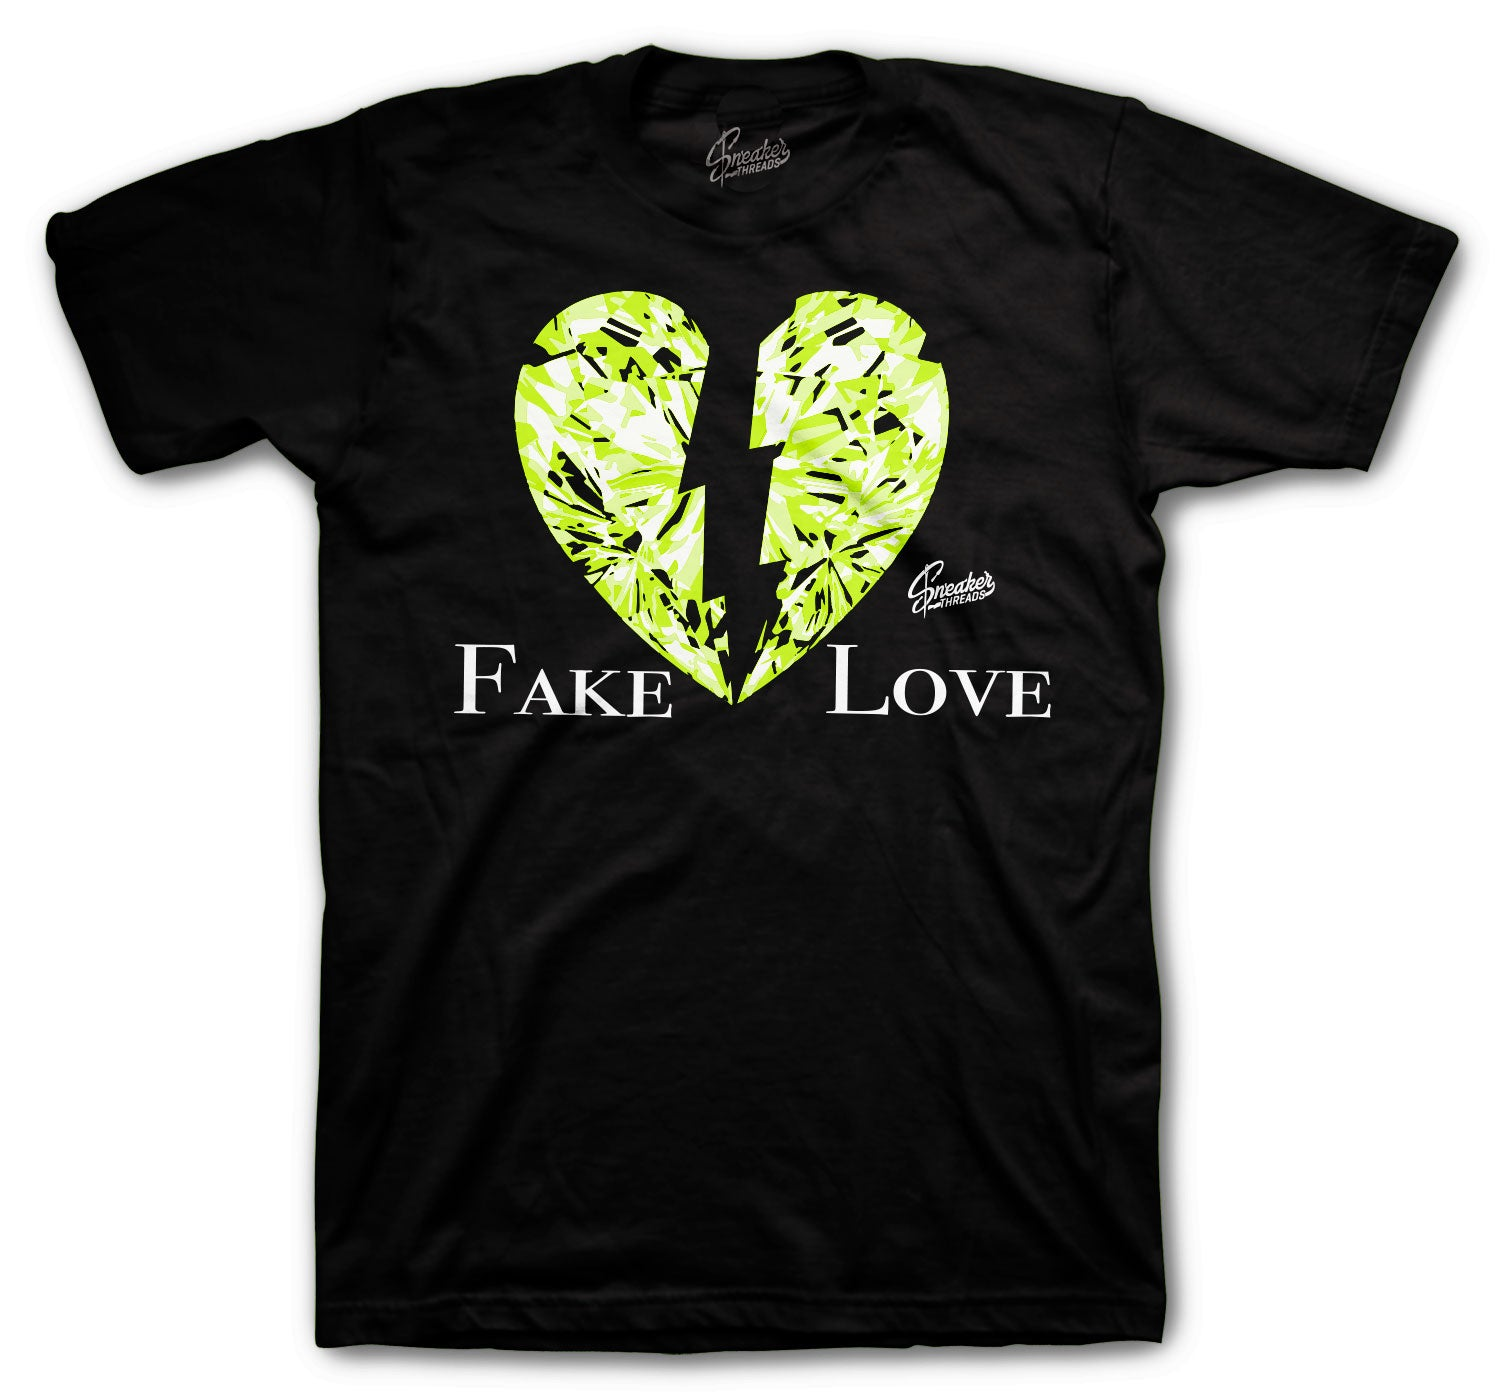 Foamposite Pro Volt Shirt - Fake Love - Black